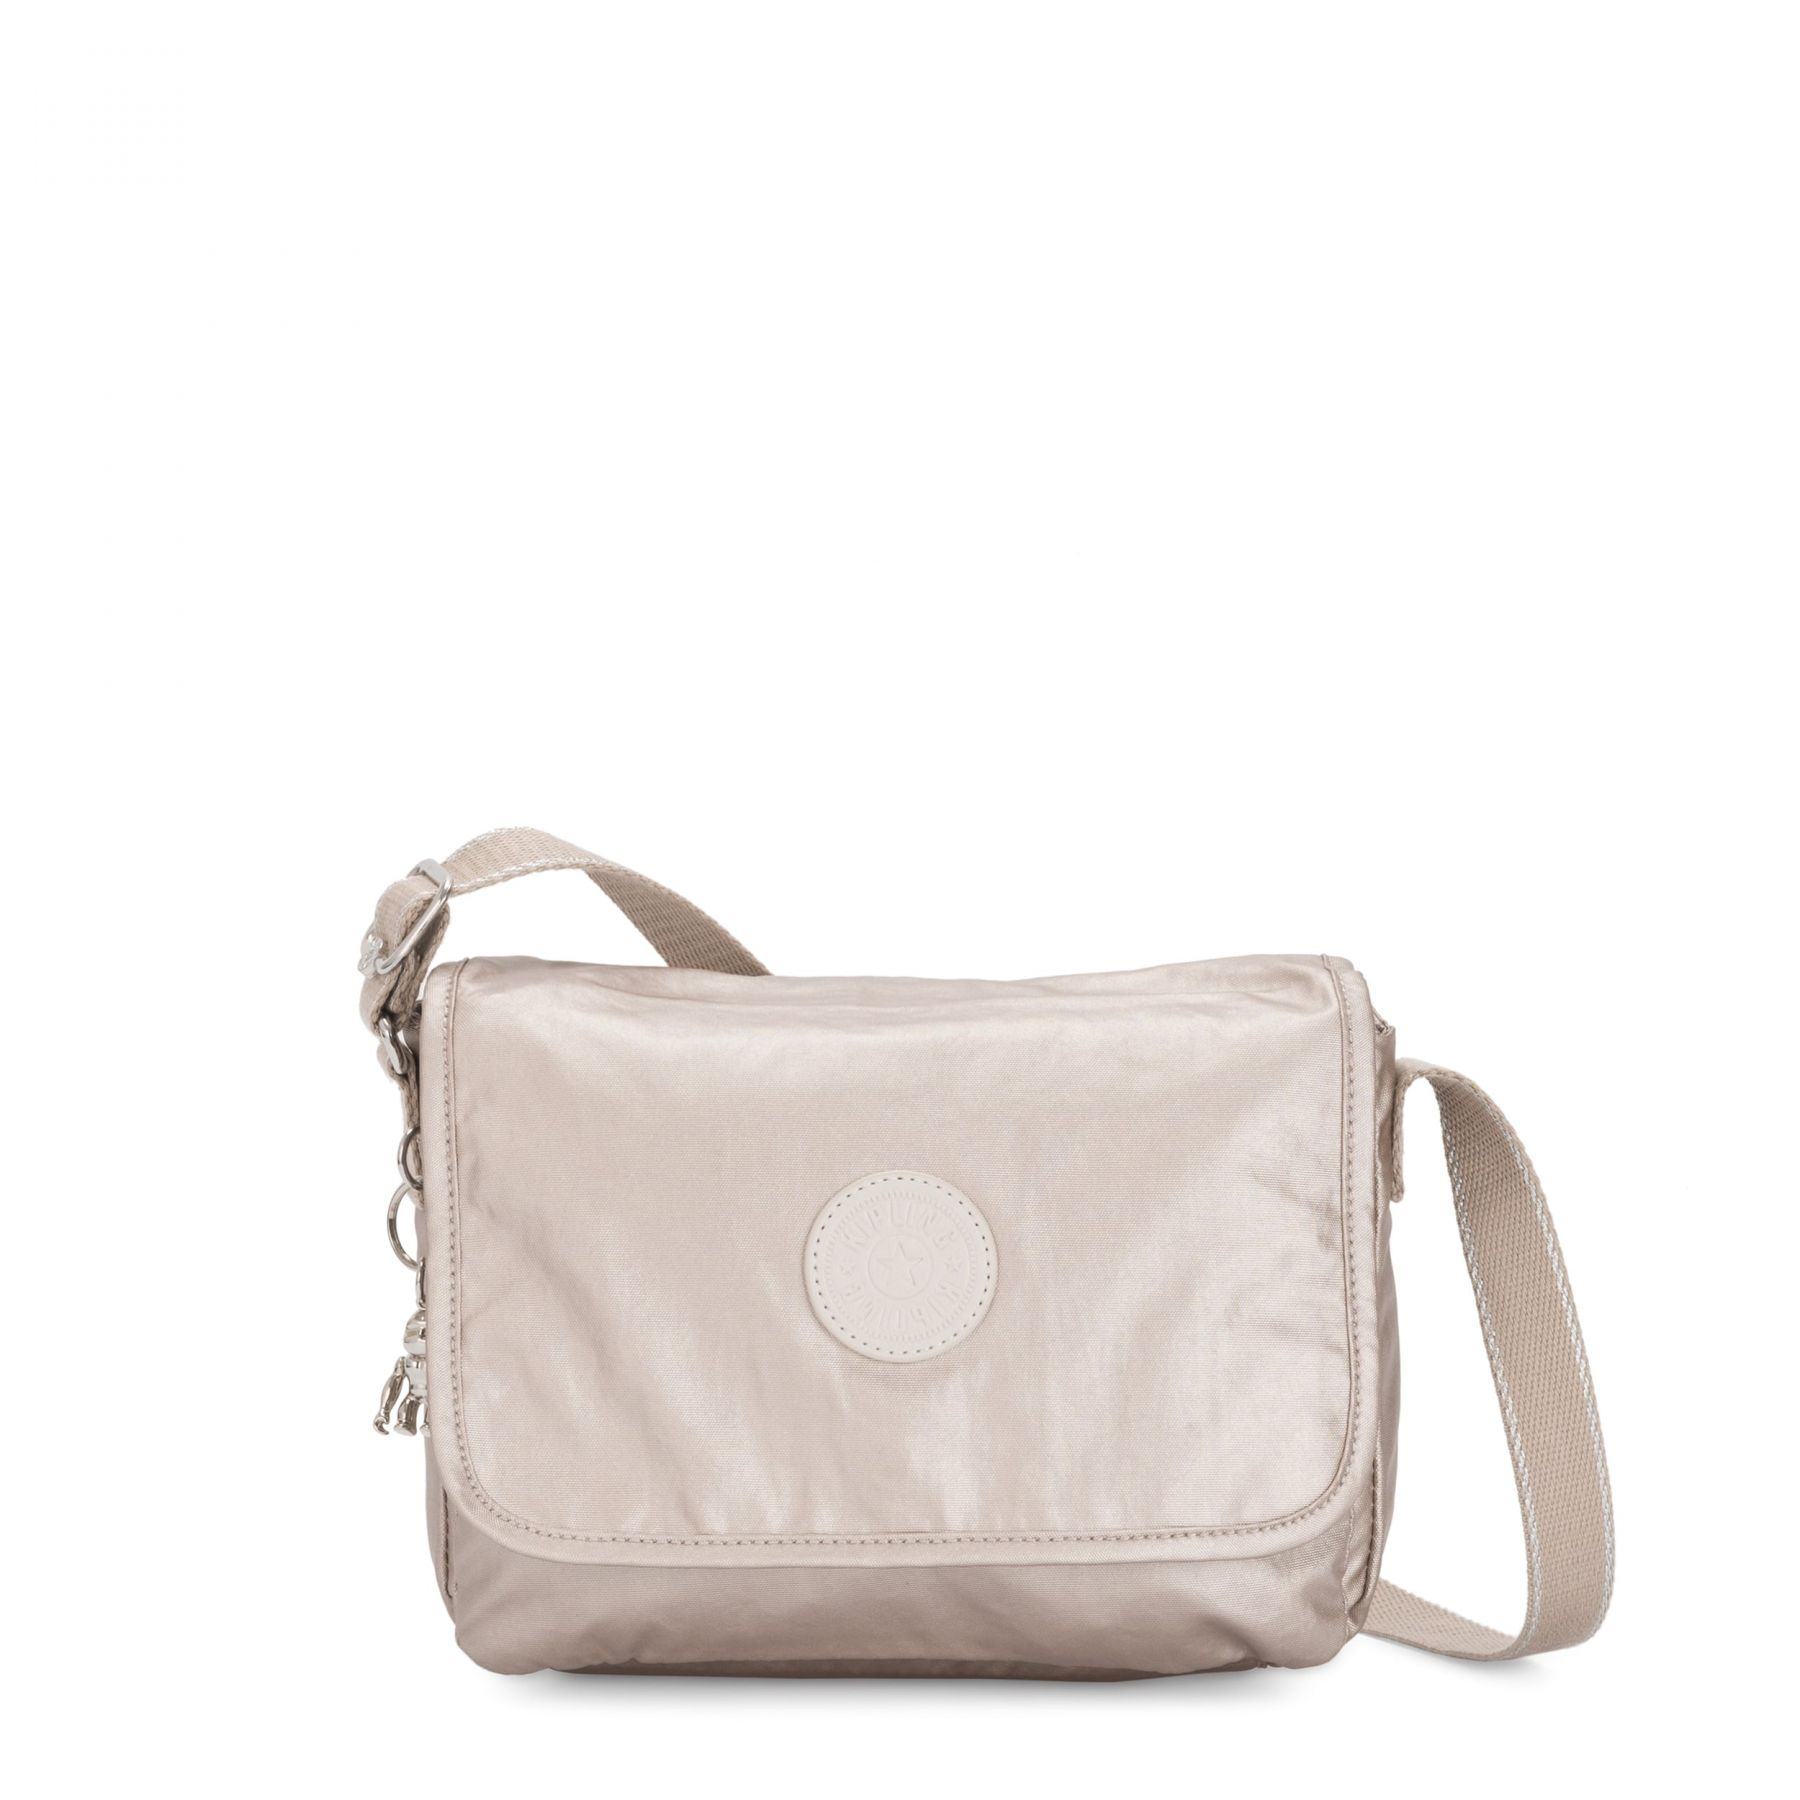 NITANY Latest Shoulder Bags by Kipling - Front view